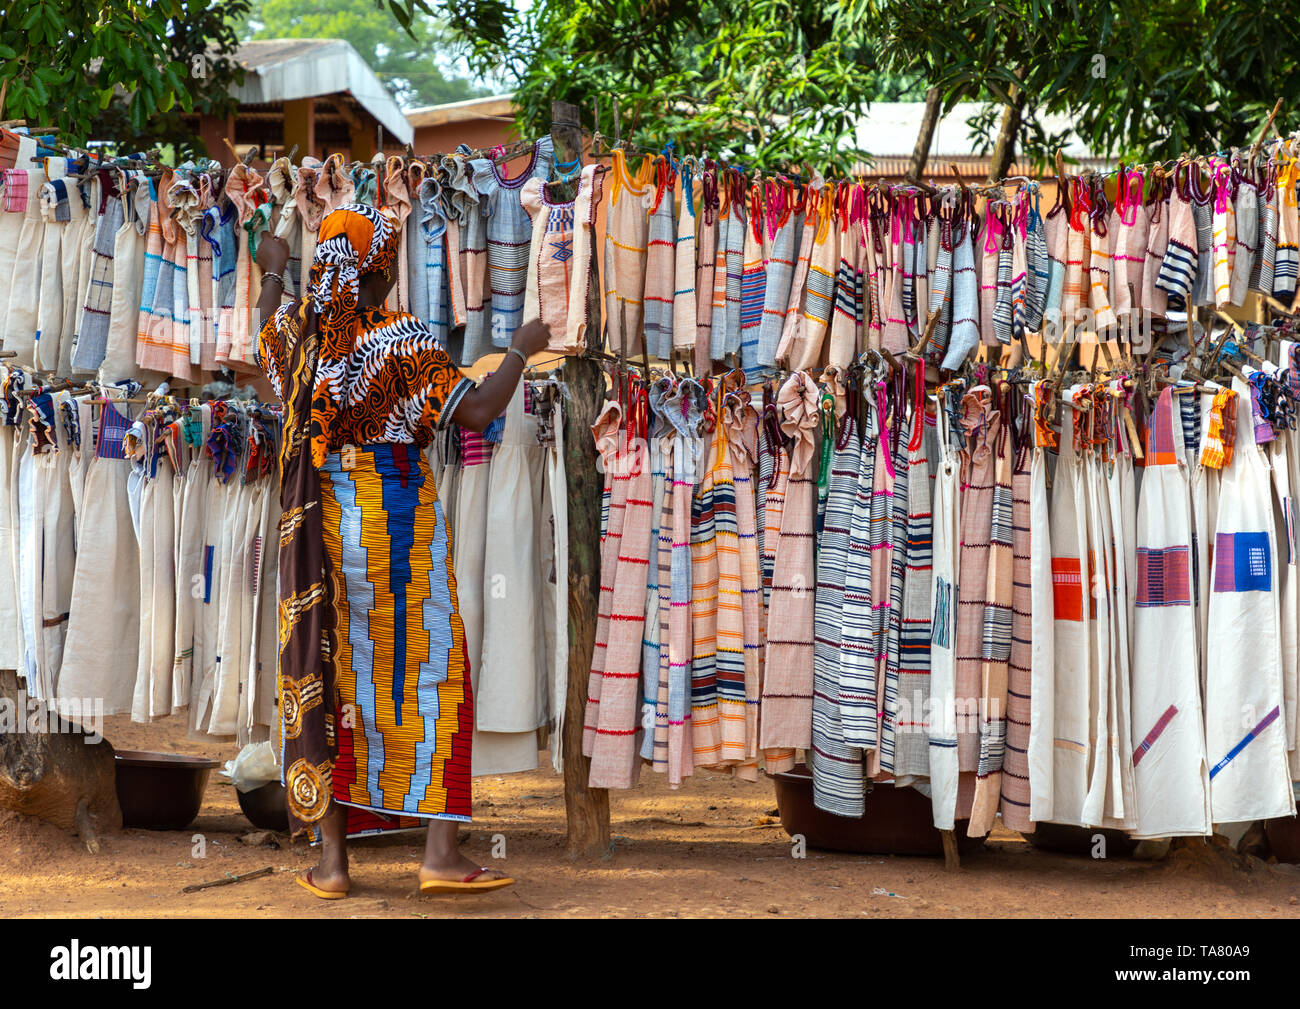 Senufo textiles and clothing at street market, Savanes district, Waraniene, Ivory Coast Stock Photo